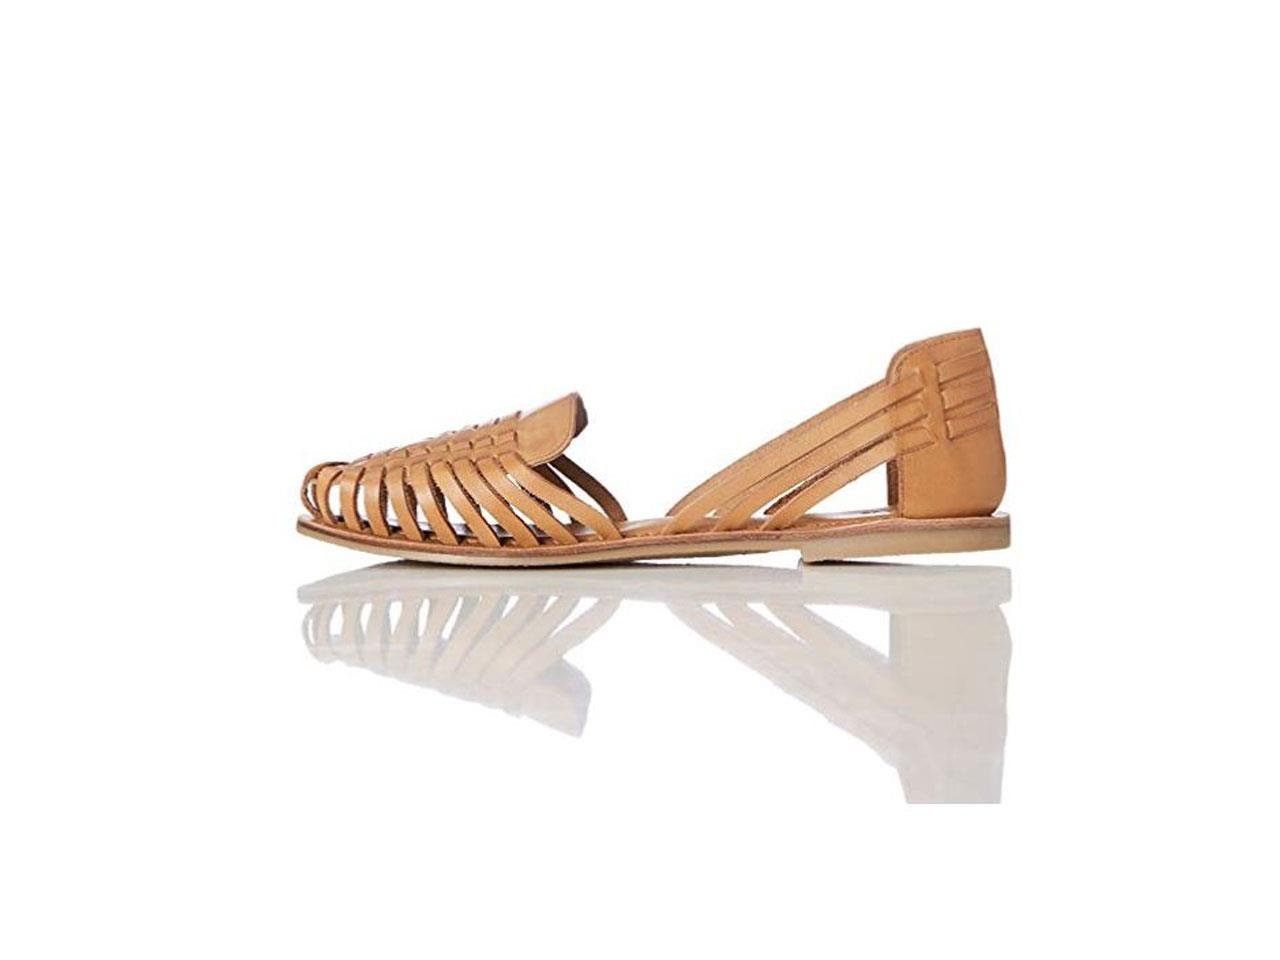 amazon prime day 2019 sandalias Amazon Find., c.p.v. (antes 38,00€)